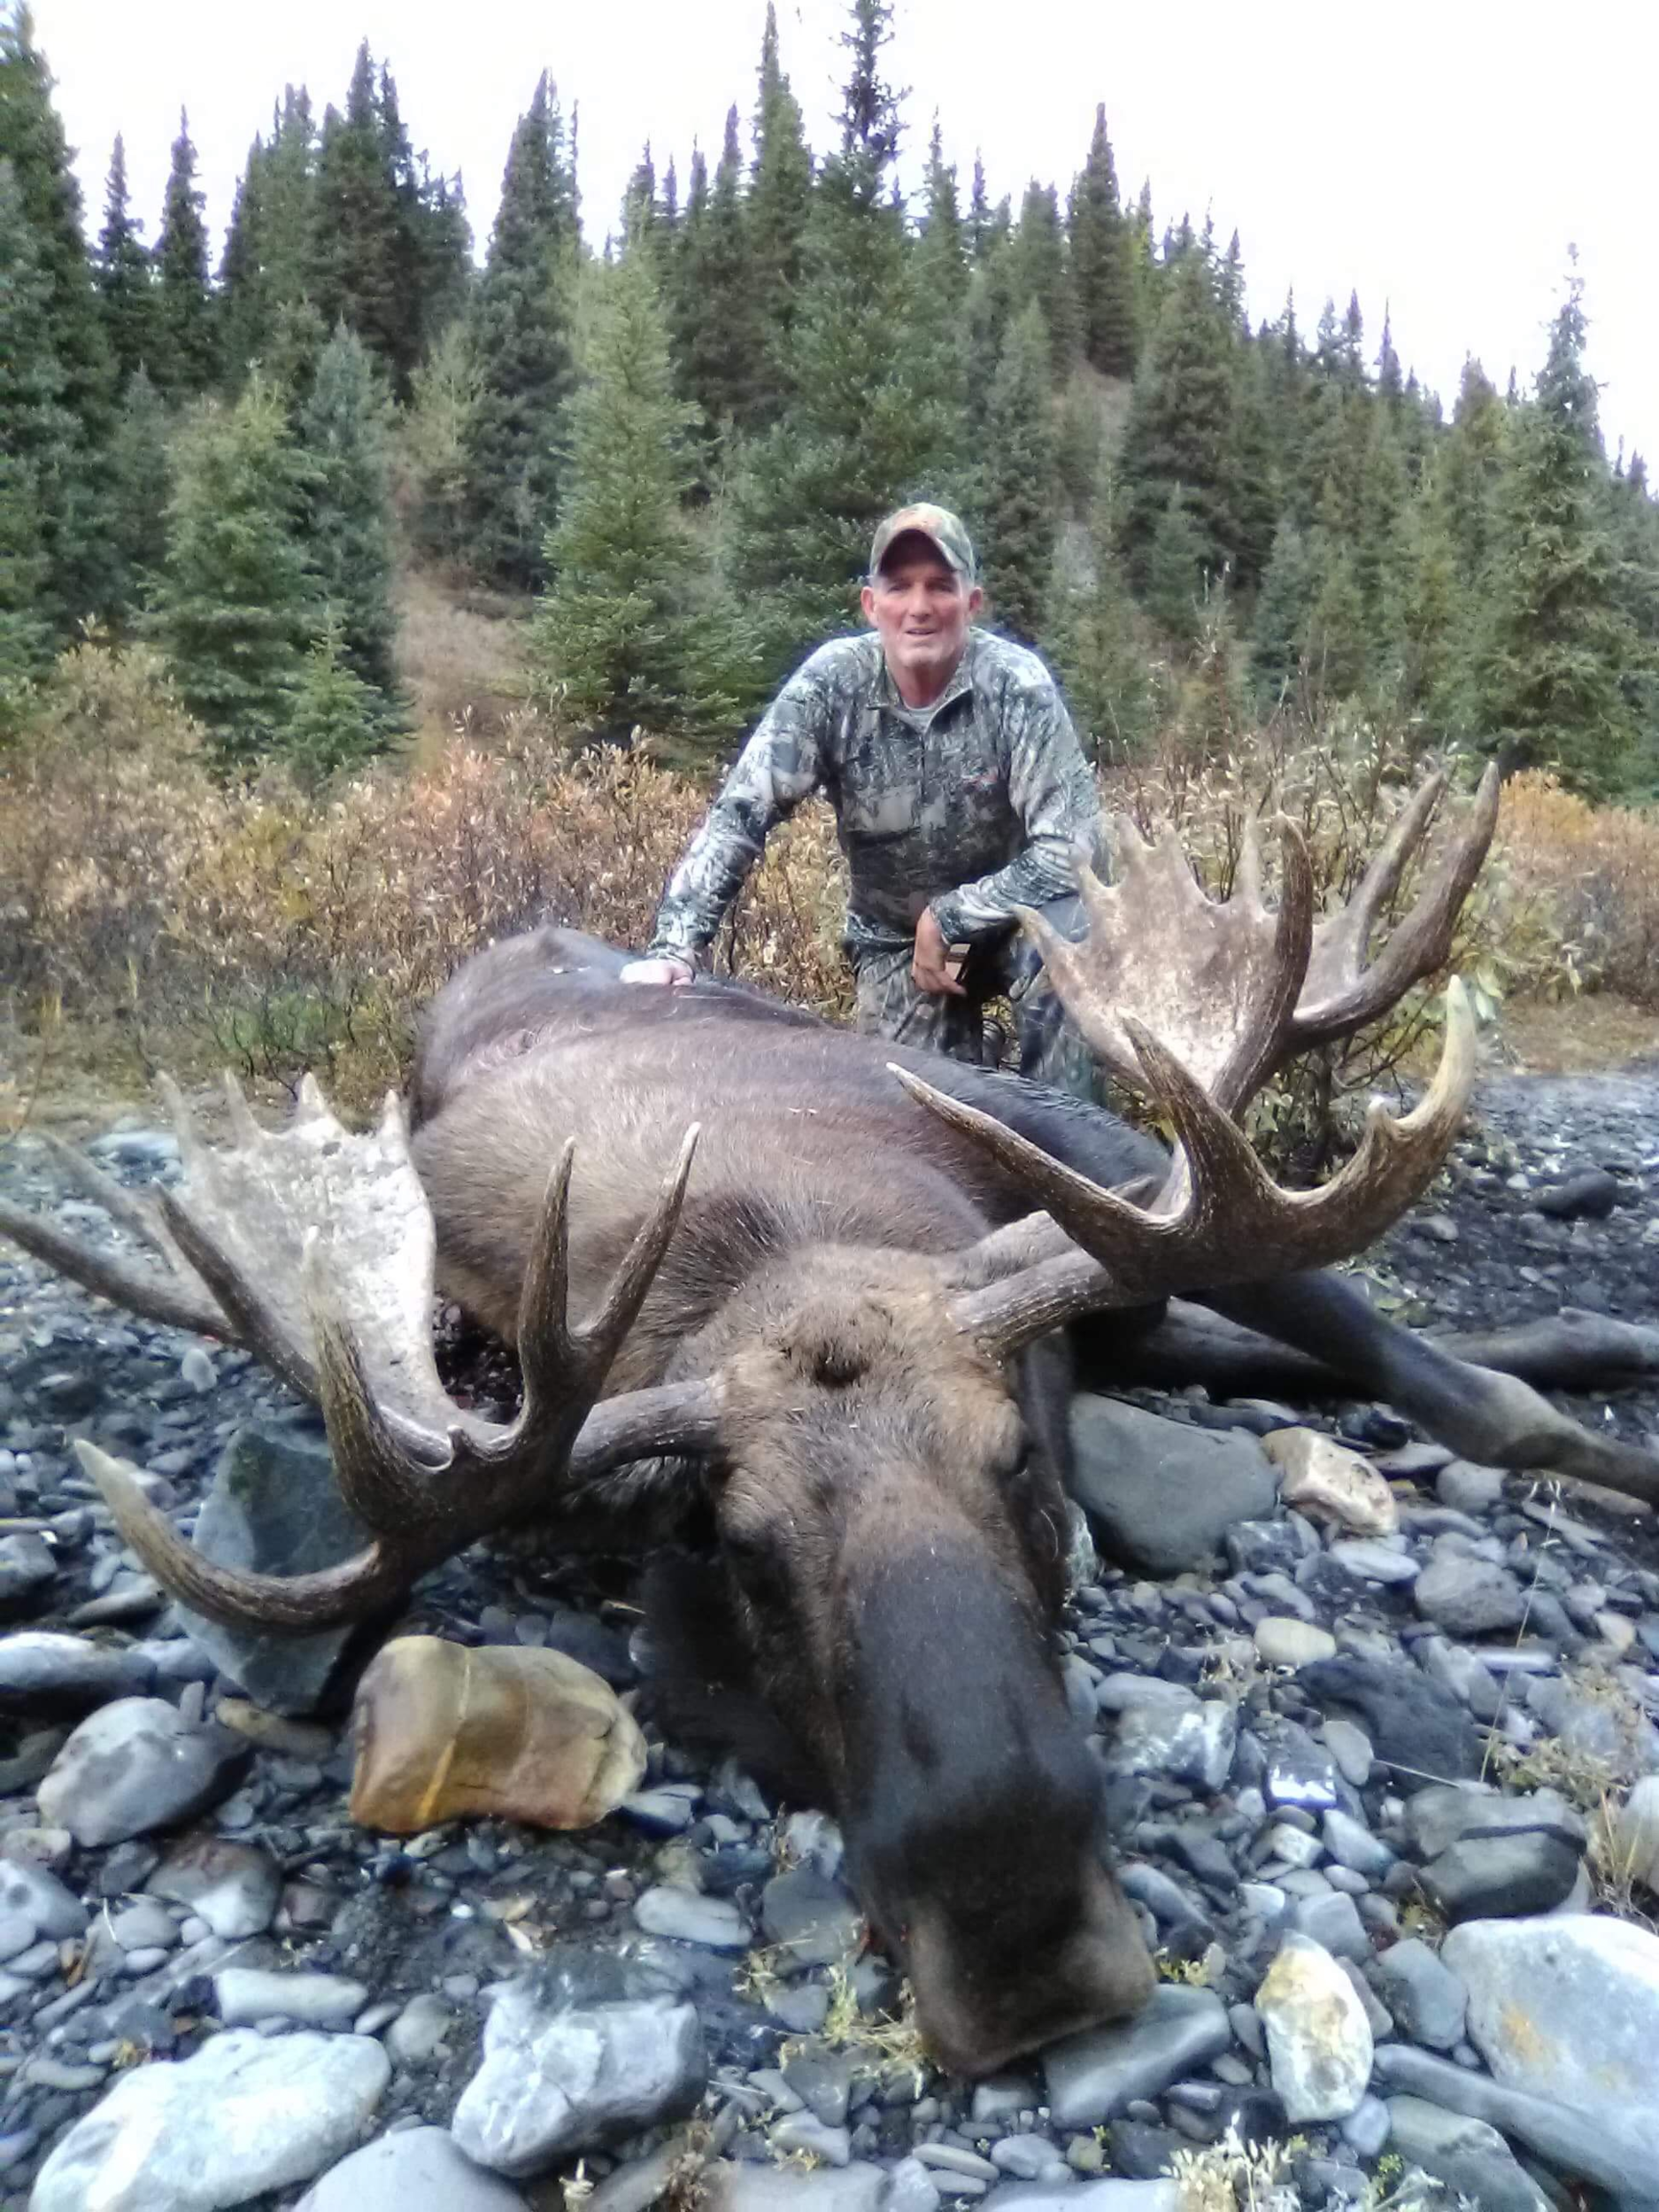 idaho-wild-sheep-canadian-moose-hunt-1